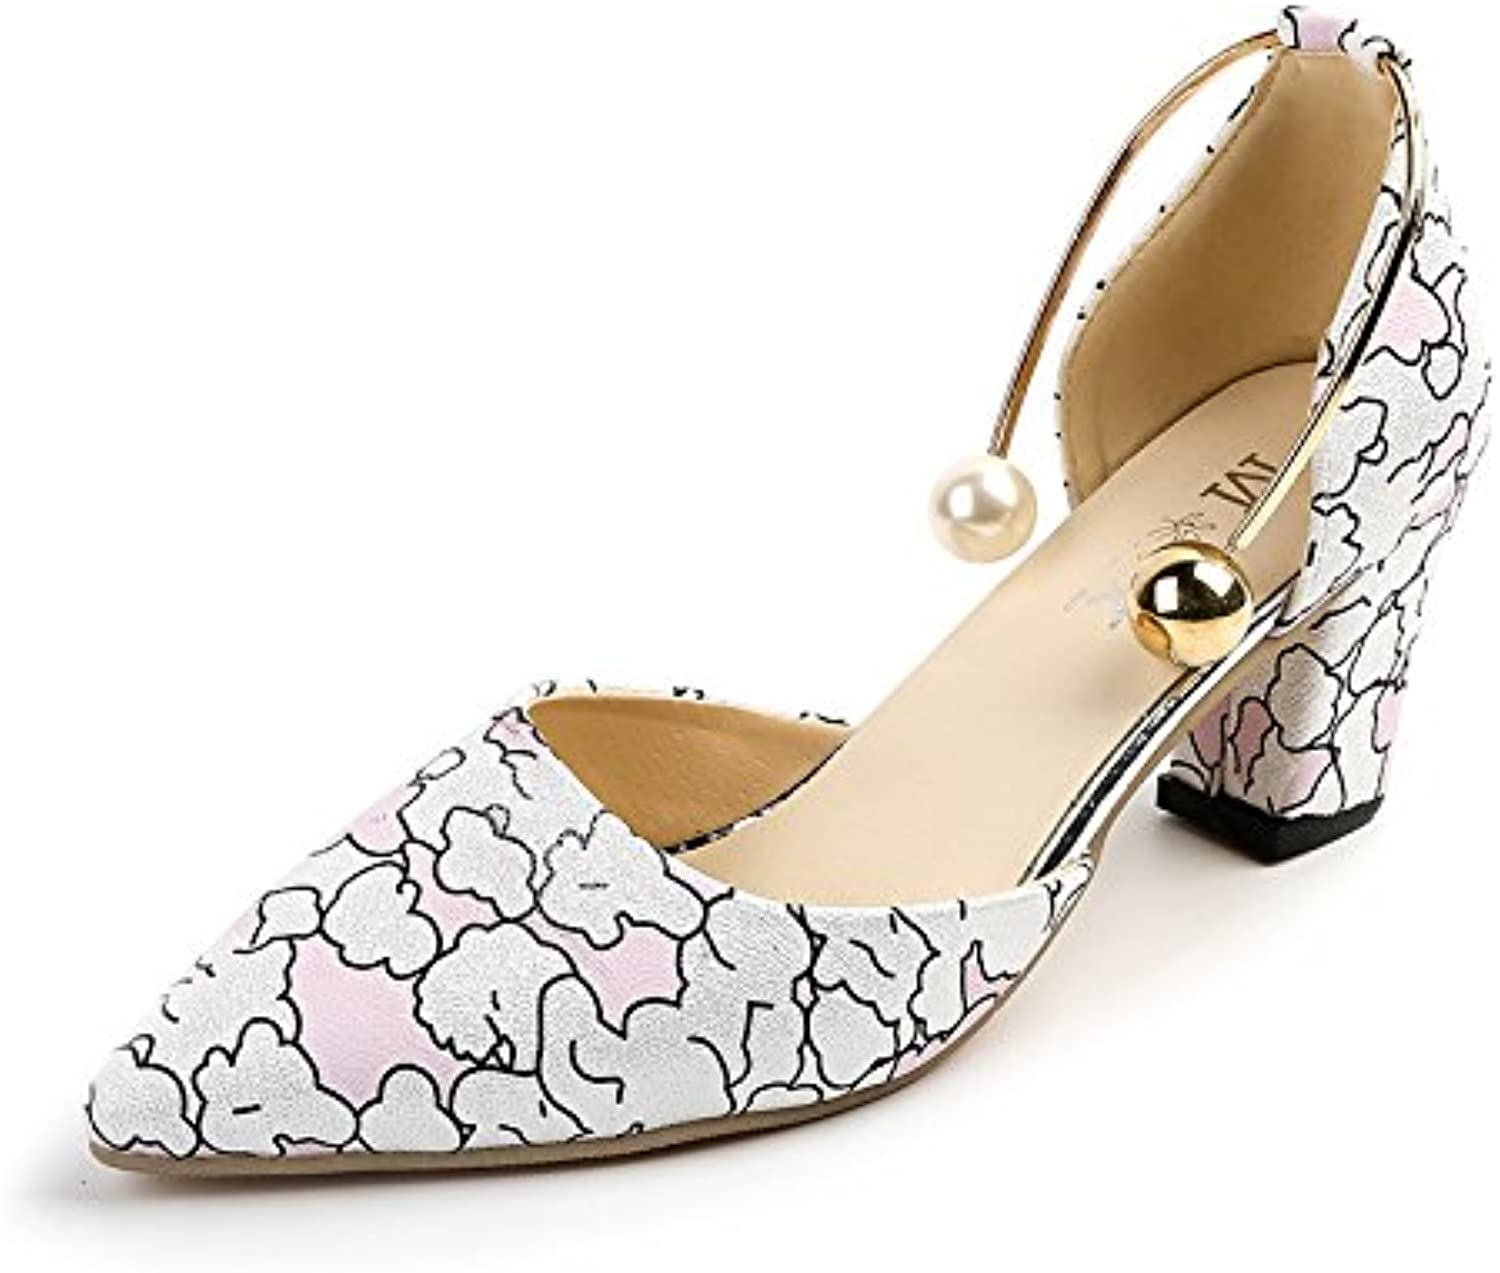 WYMBS Autumn and Winter Gifts Women's shoes European Women's shoes